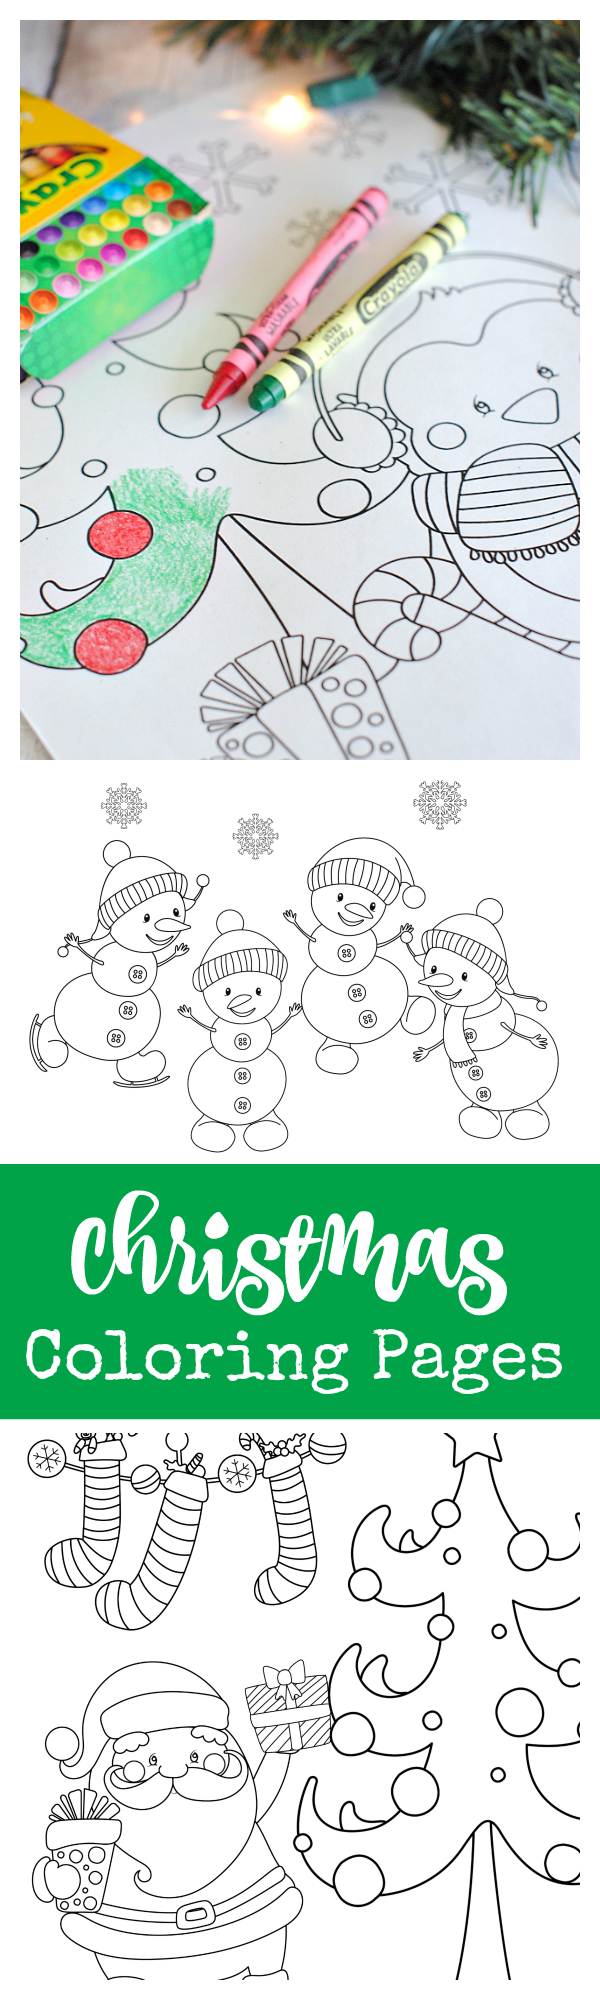 Coloring pages printable free christmas - Free Printable Christmas Coloring Pages